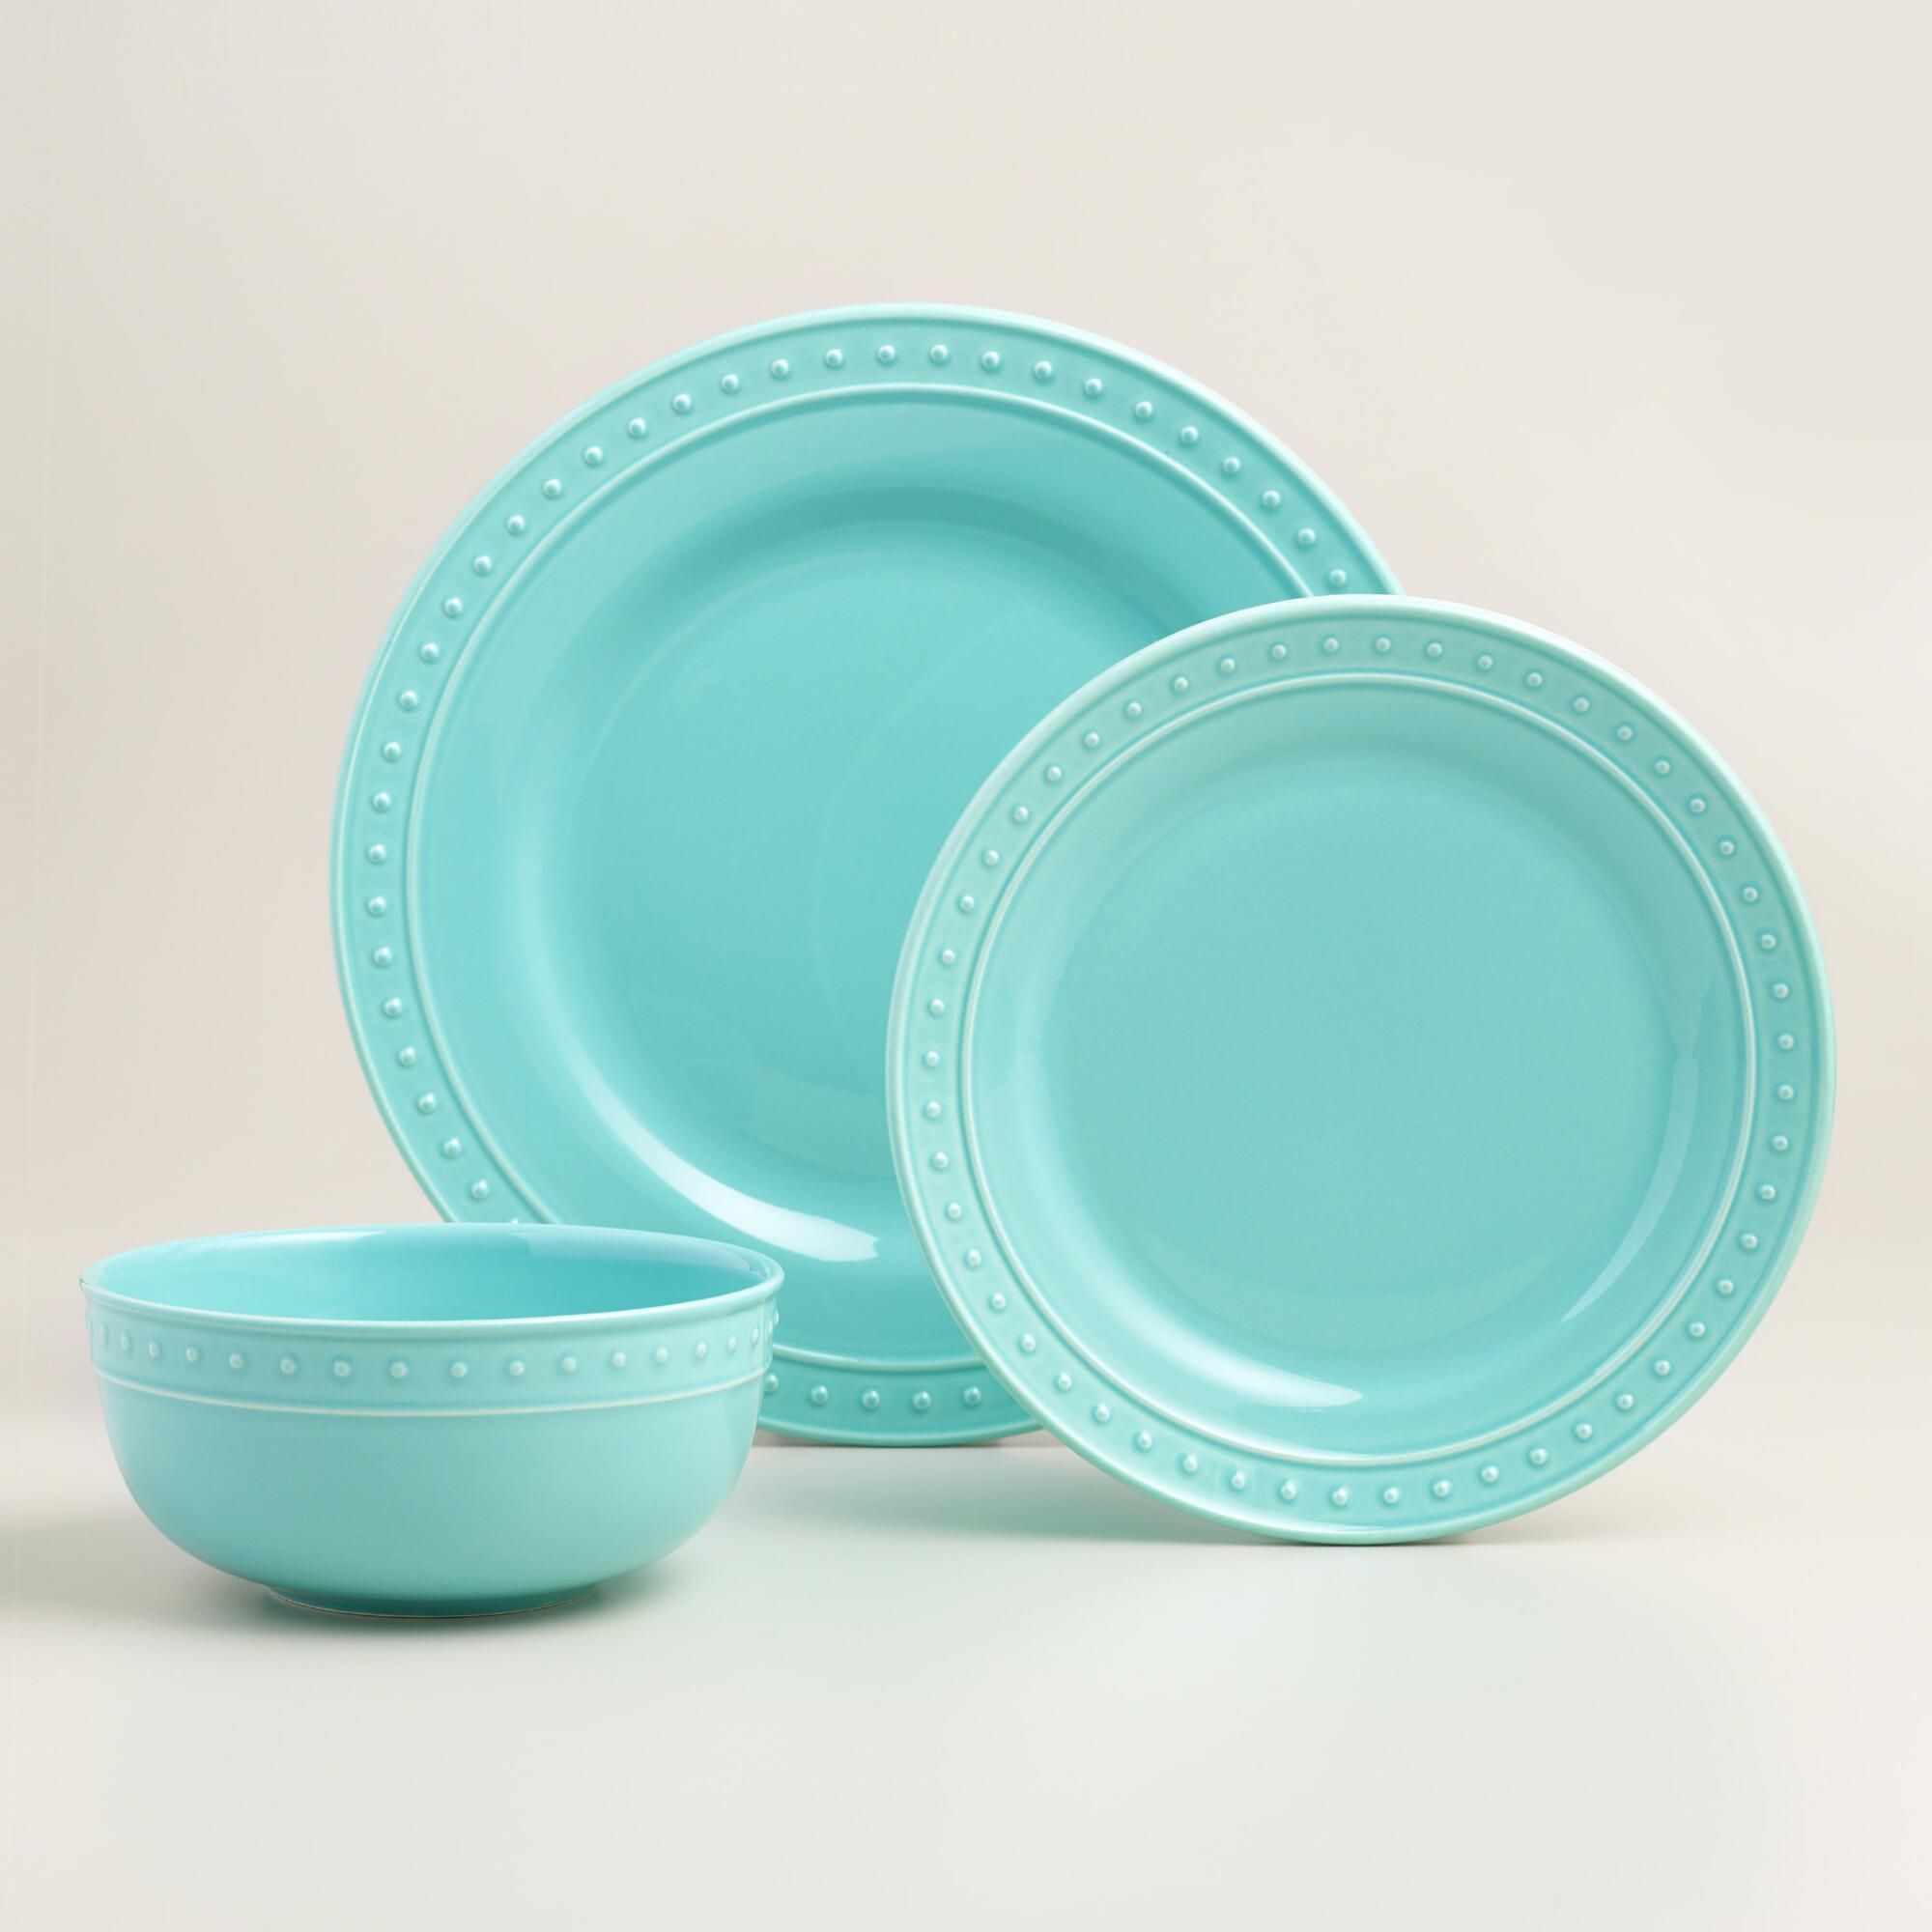 kitchen cups and plates espresso white cabinets aqua nantucket dinnerware discover more ideas about